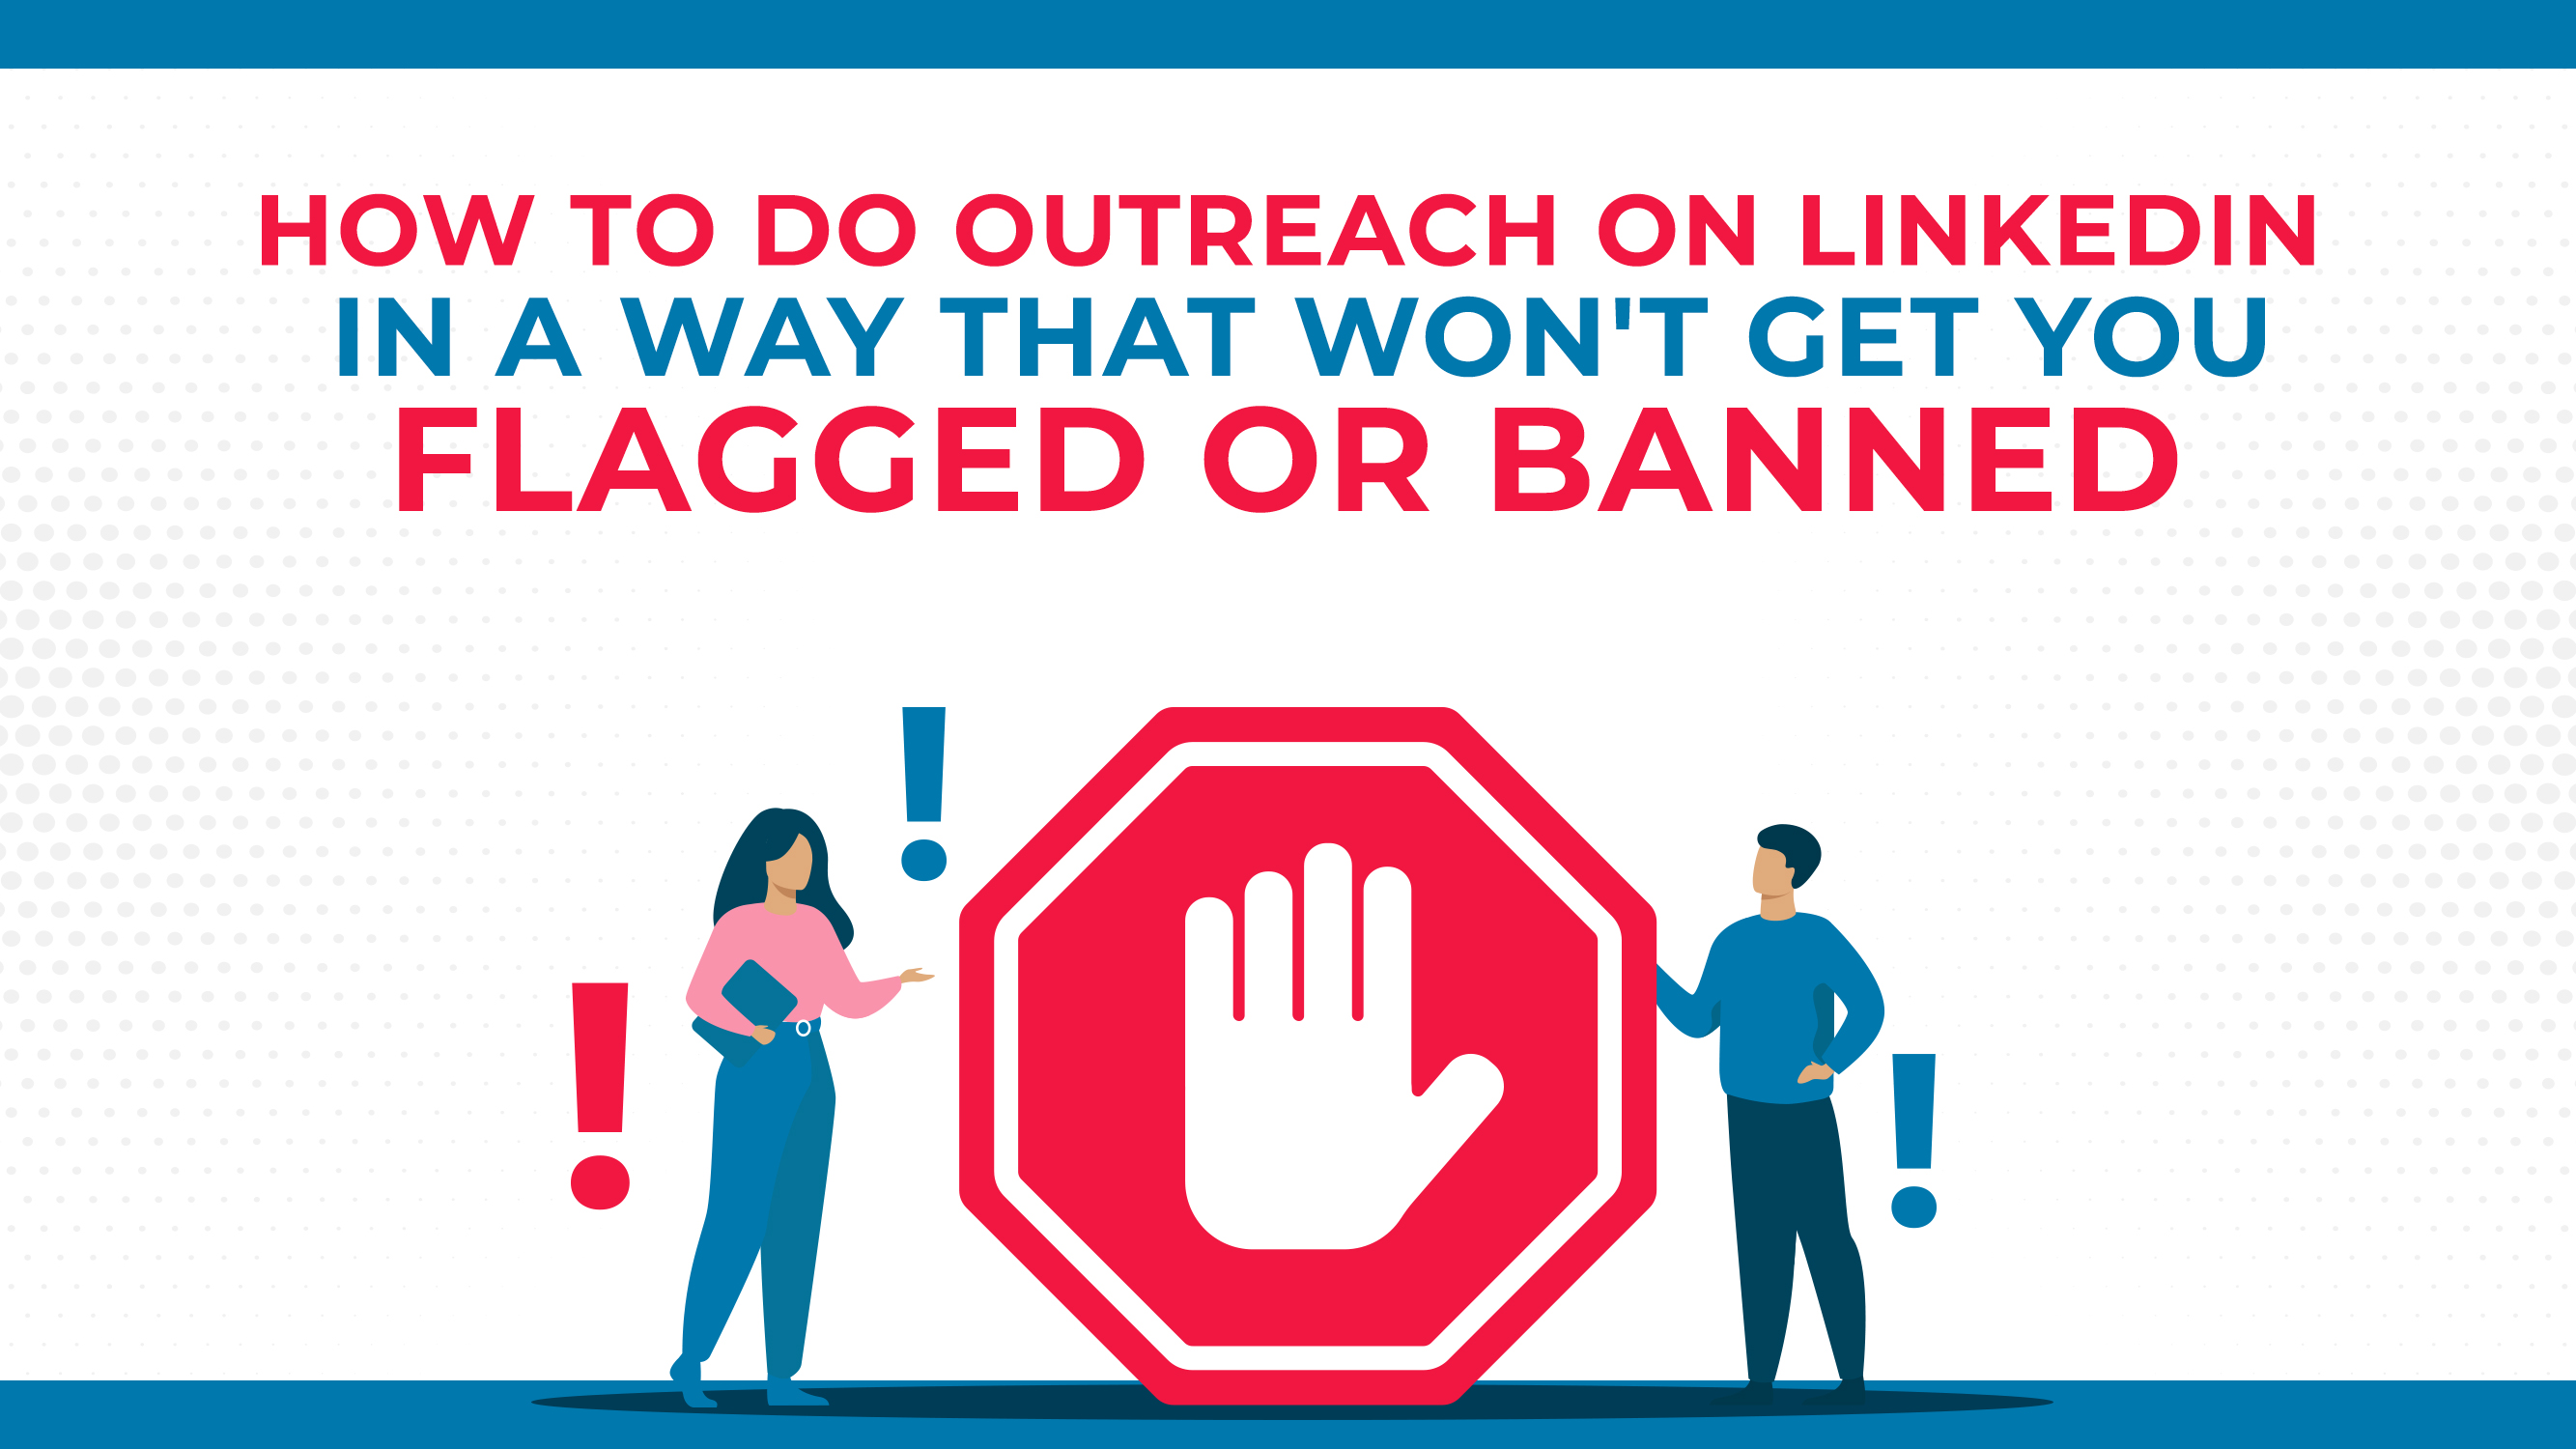 How To Do Outreach On LinkedIn In A Way That Won't Get You Flagged Or Banned